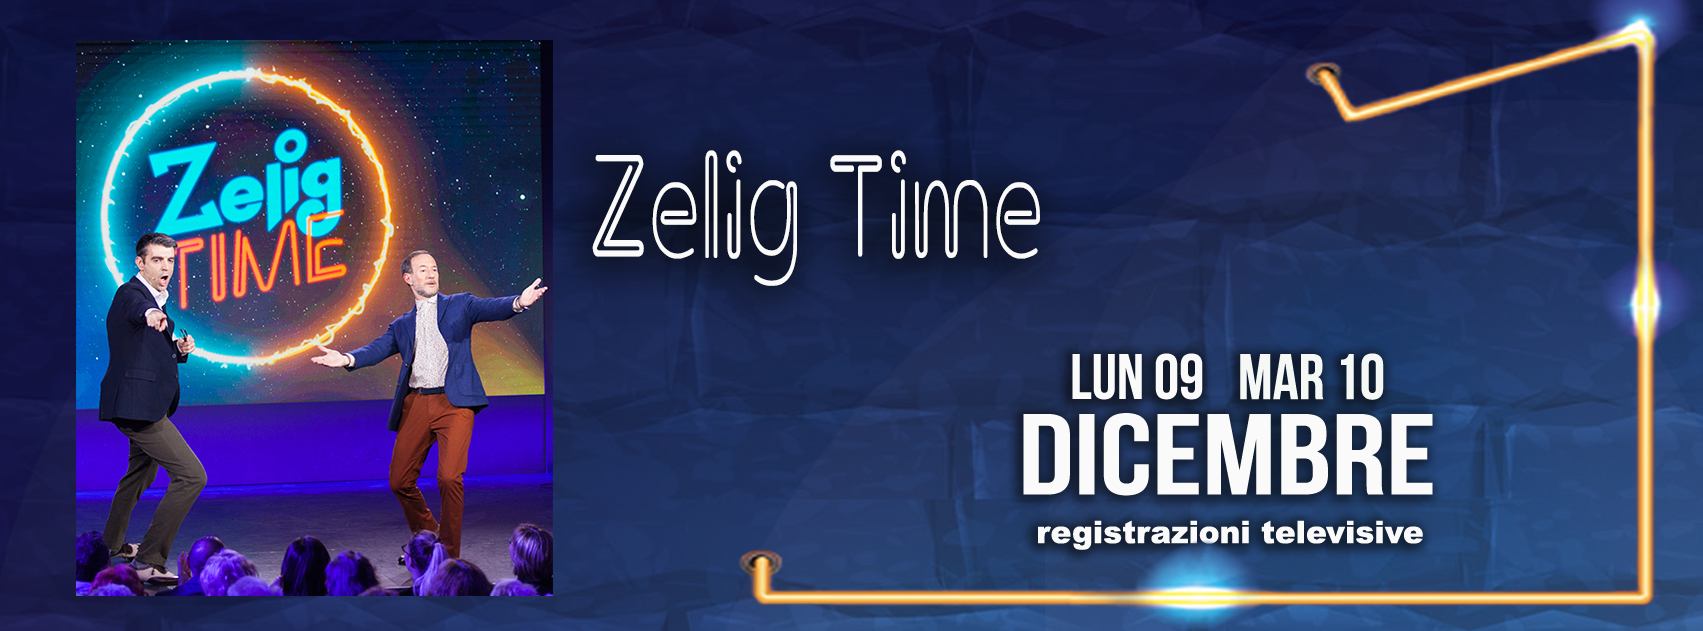 Zelig Time - Registrazioni TV